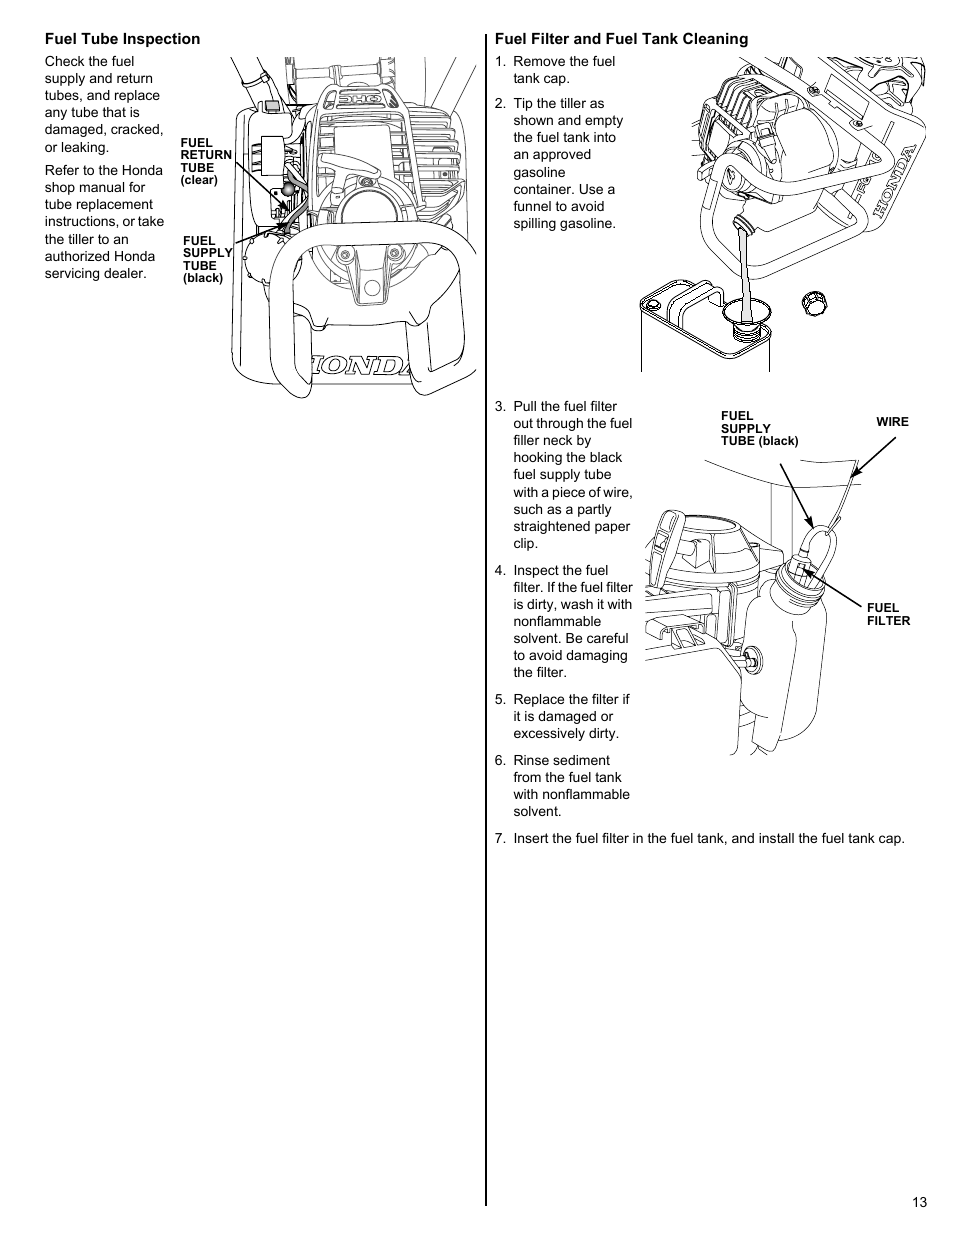 medium resolution of fuel tube inspection fuel filter and fuel tank cleaning honda fg110 user manual page 13 24